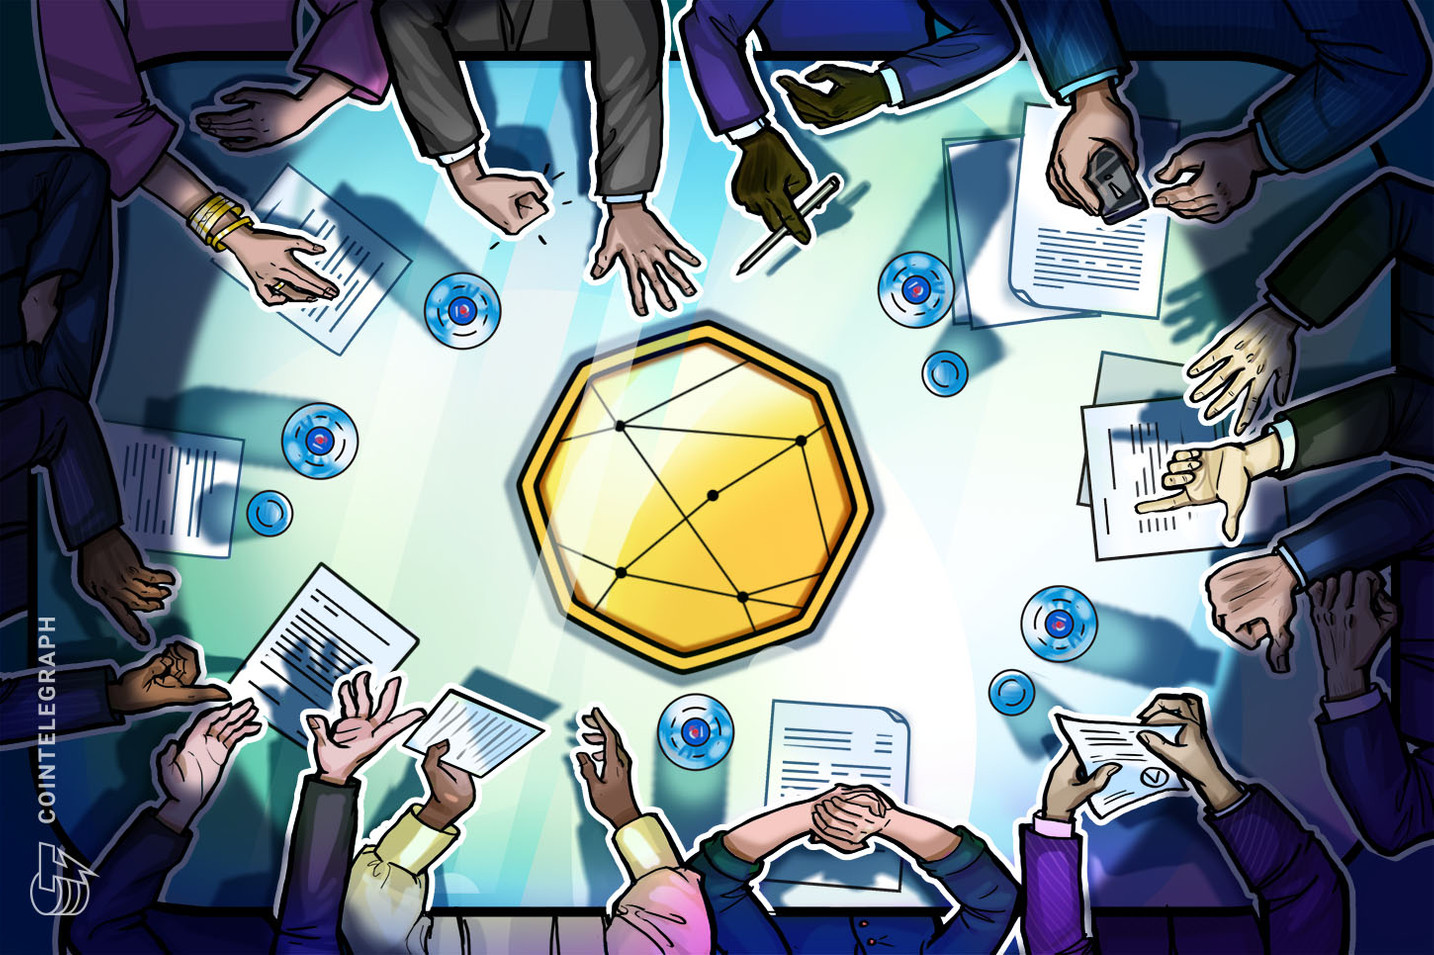 Financial advisers lead the institutional push toward crypto adoption